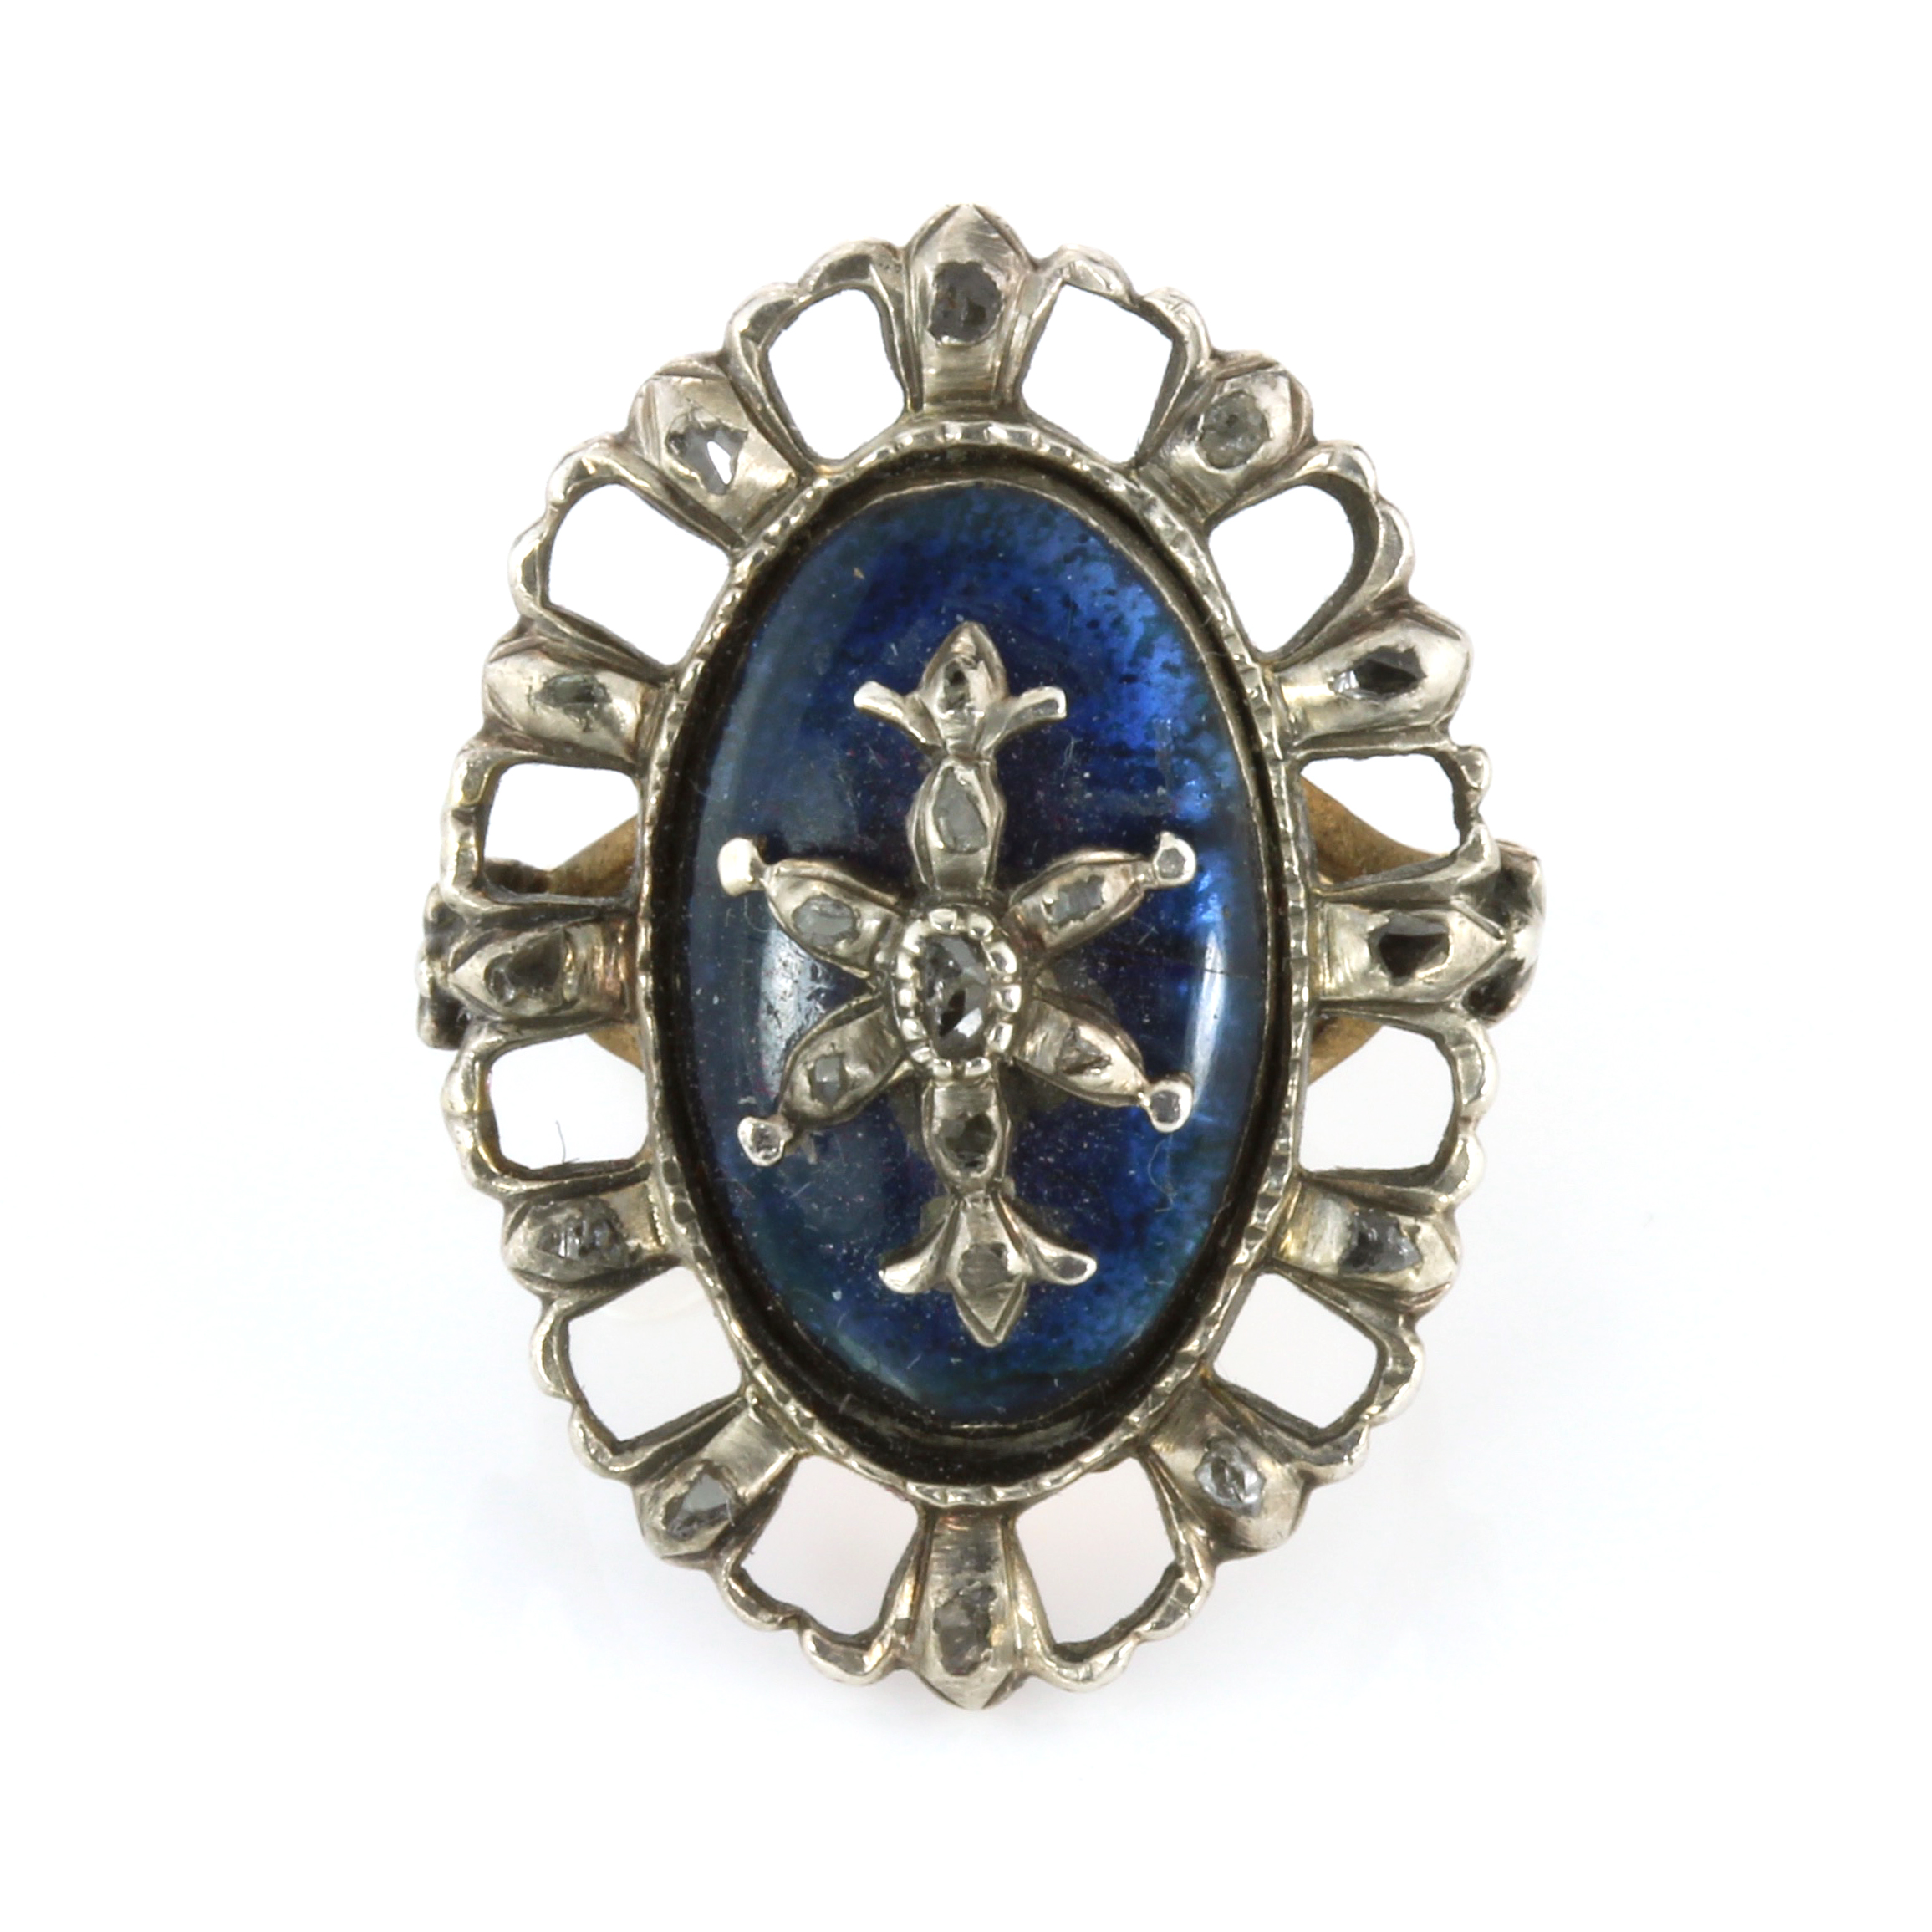 Los 26 - AN ANTIQUE DIAMOND AND BLUE GLASS RING set with a navette French blue glass panel overlaid with a